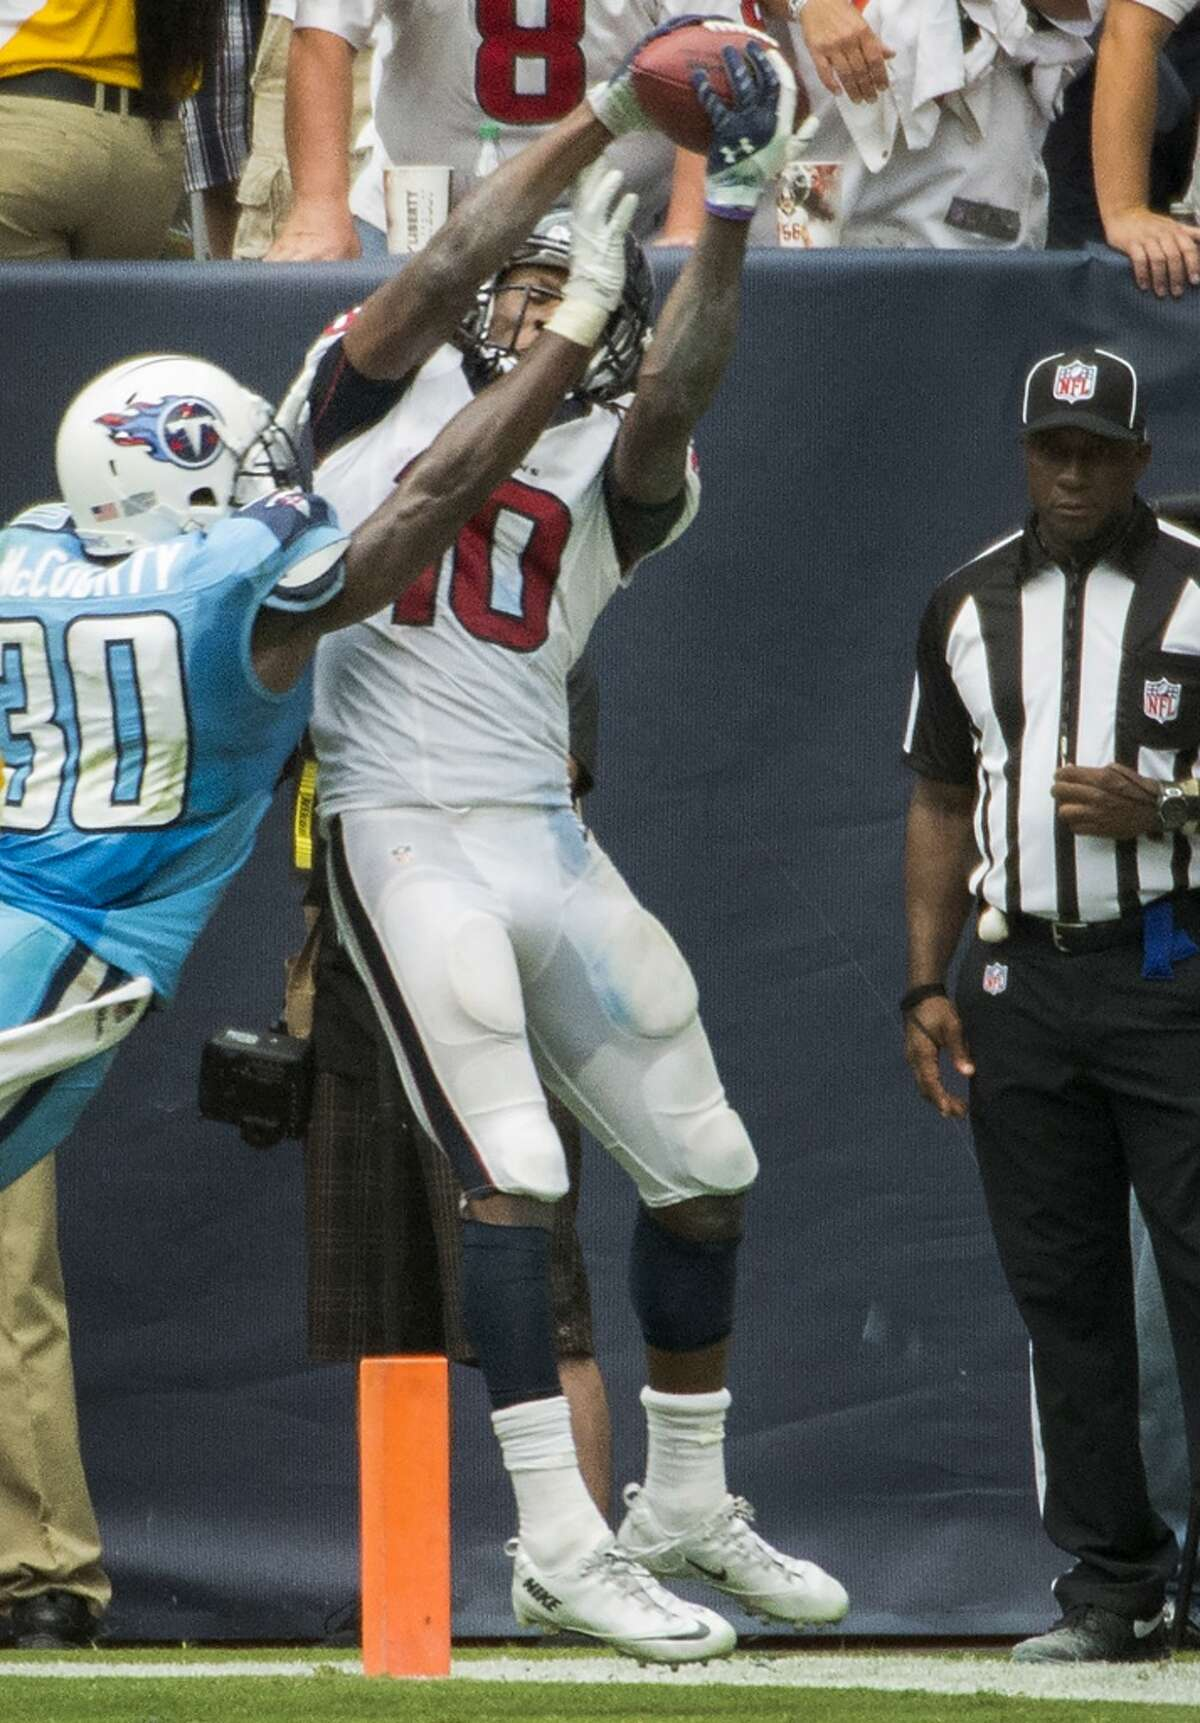 Texans wide receiver DeAndre Hopkins catches a game-winning 3-yard touchdown pass as Titans cornerback Jason McCourty defends during overtime.